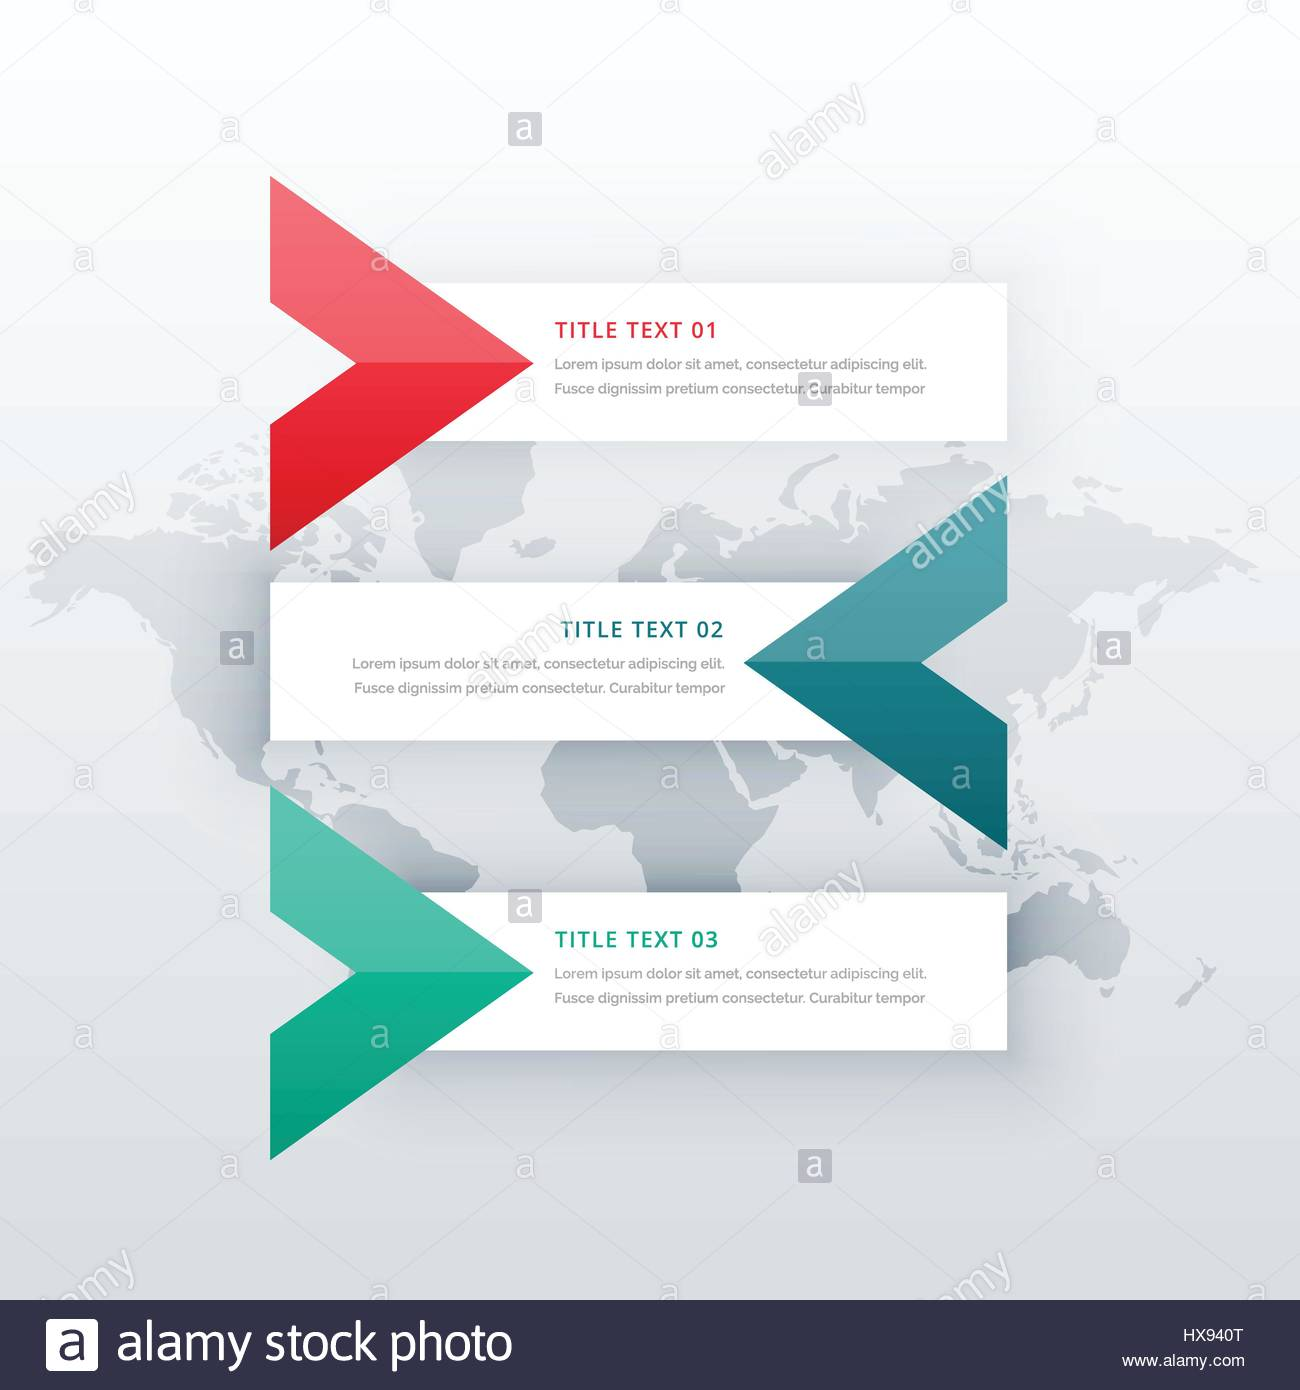 Clean three steps infographic options template with arrow shape for clean three steps infographic options template with arrow shape for business presentation or workflow diagrams in creative style ccuart Gallery